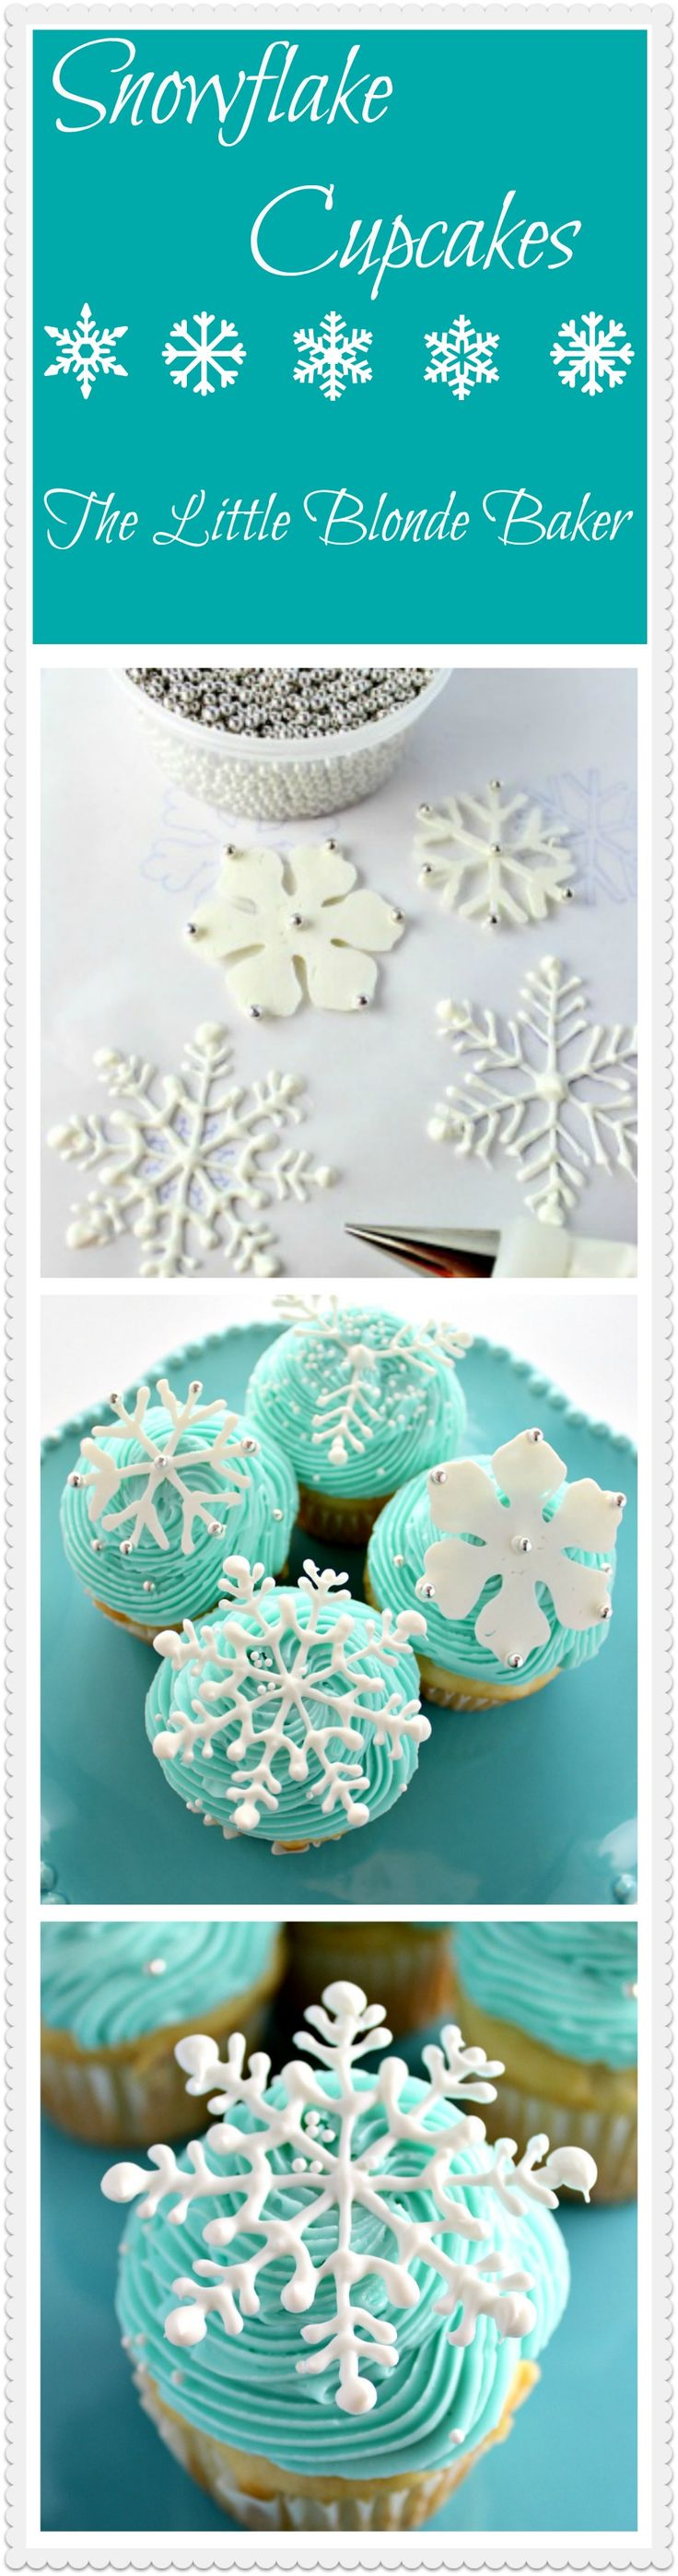 Snowflake Cupcakes elegant and unique. Easy to make with white chocolate and a pastry bag. Let your creativity come out to make these beautiful cupcakes.